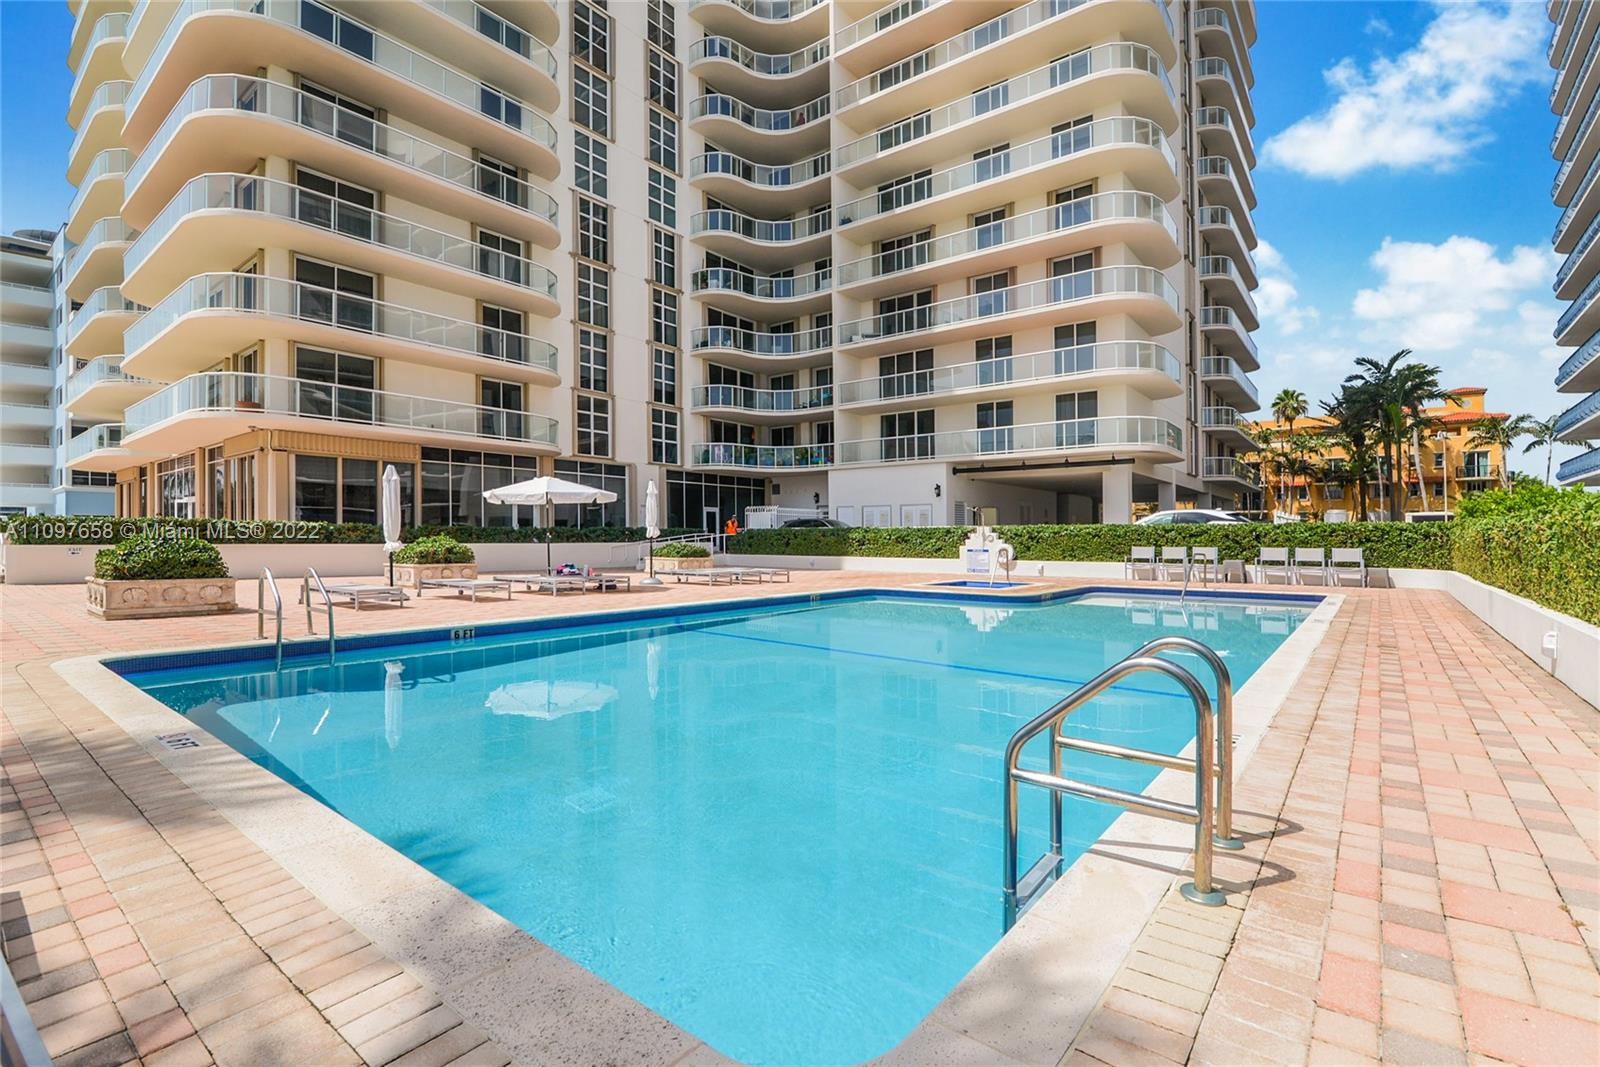 Condo For Sale at Champlain Towers East,Champlain Towers Eas